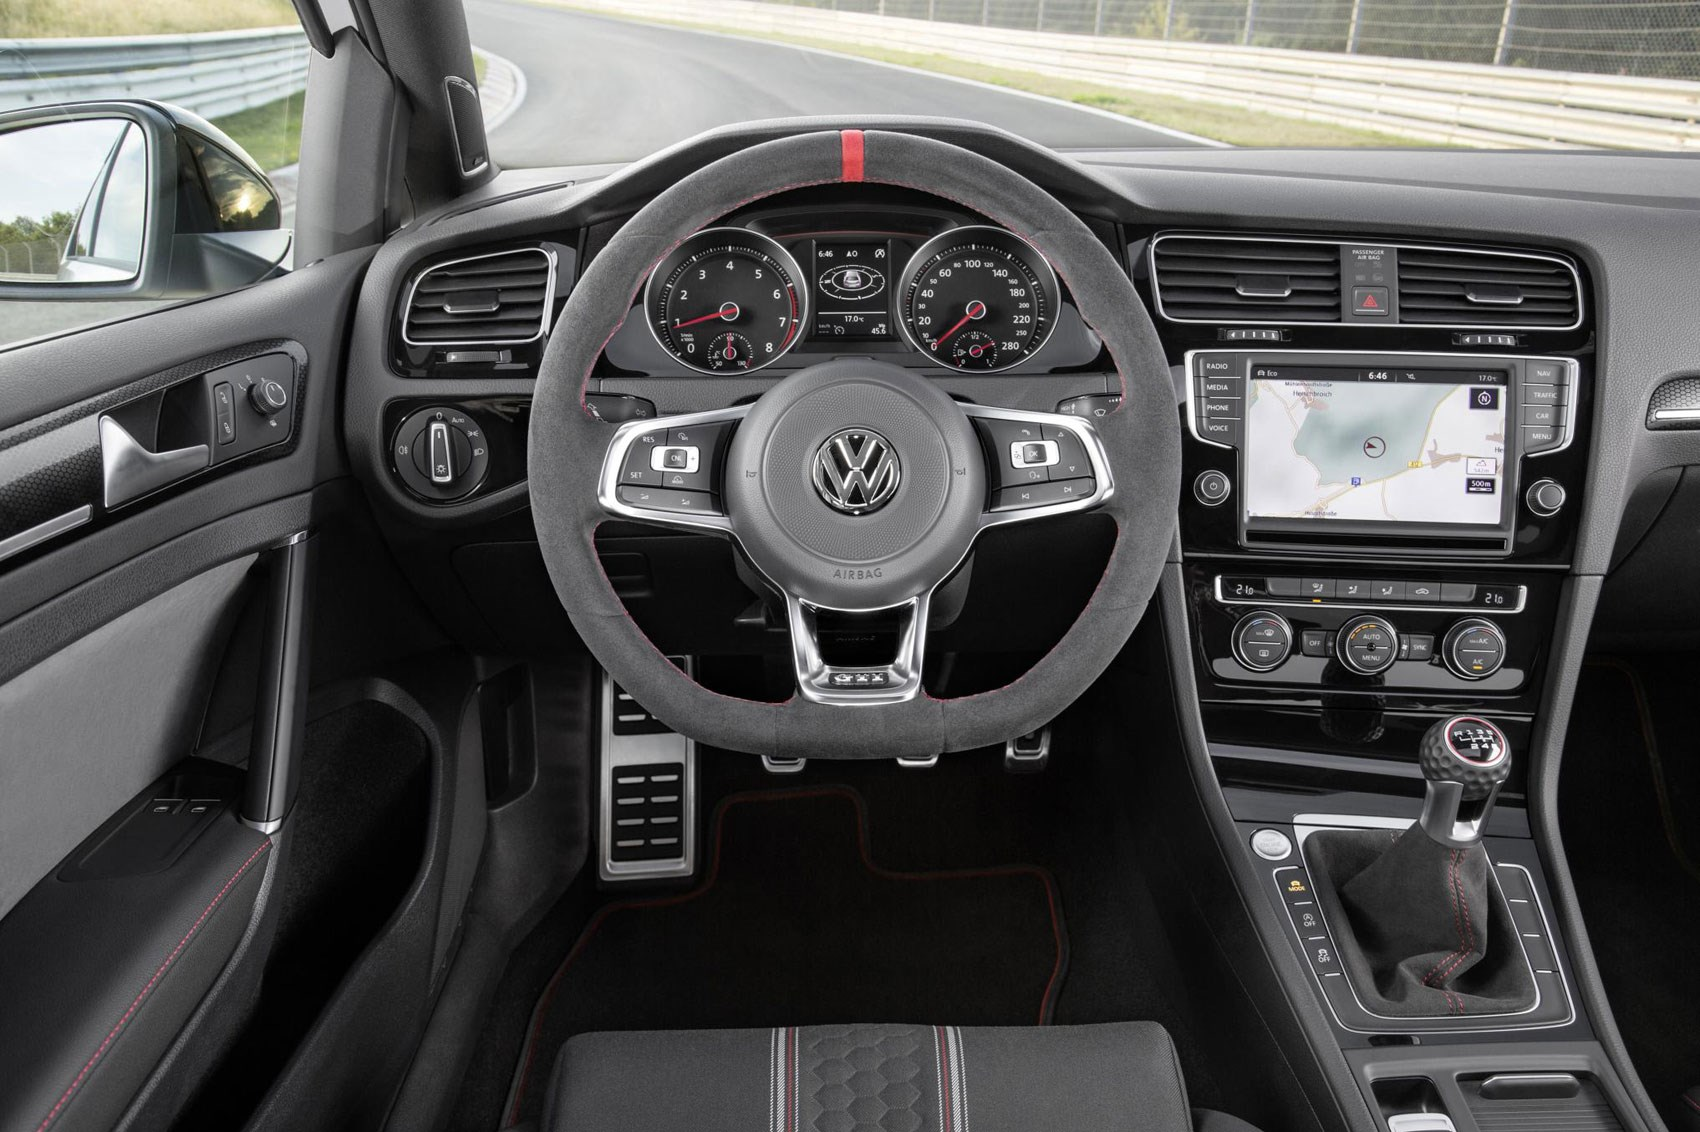 Volkswagen Golf GTI Clubsport Dashboard and Head Unit Panels